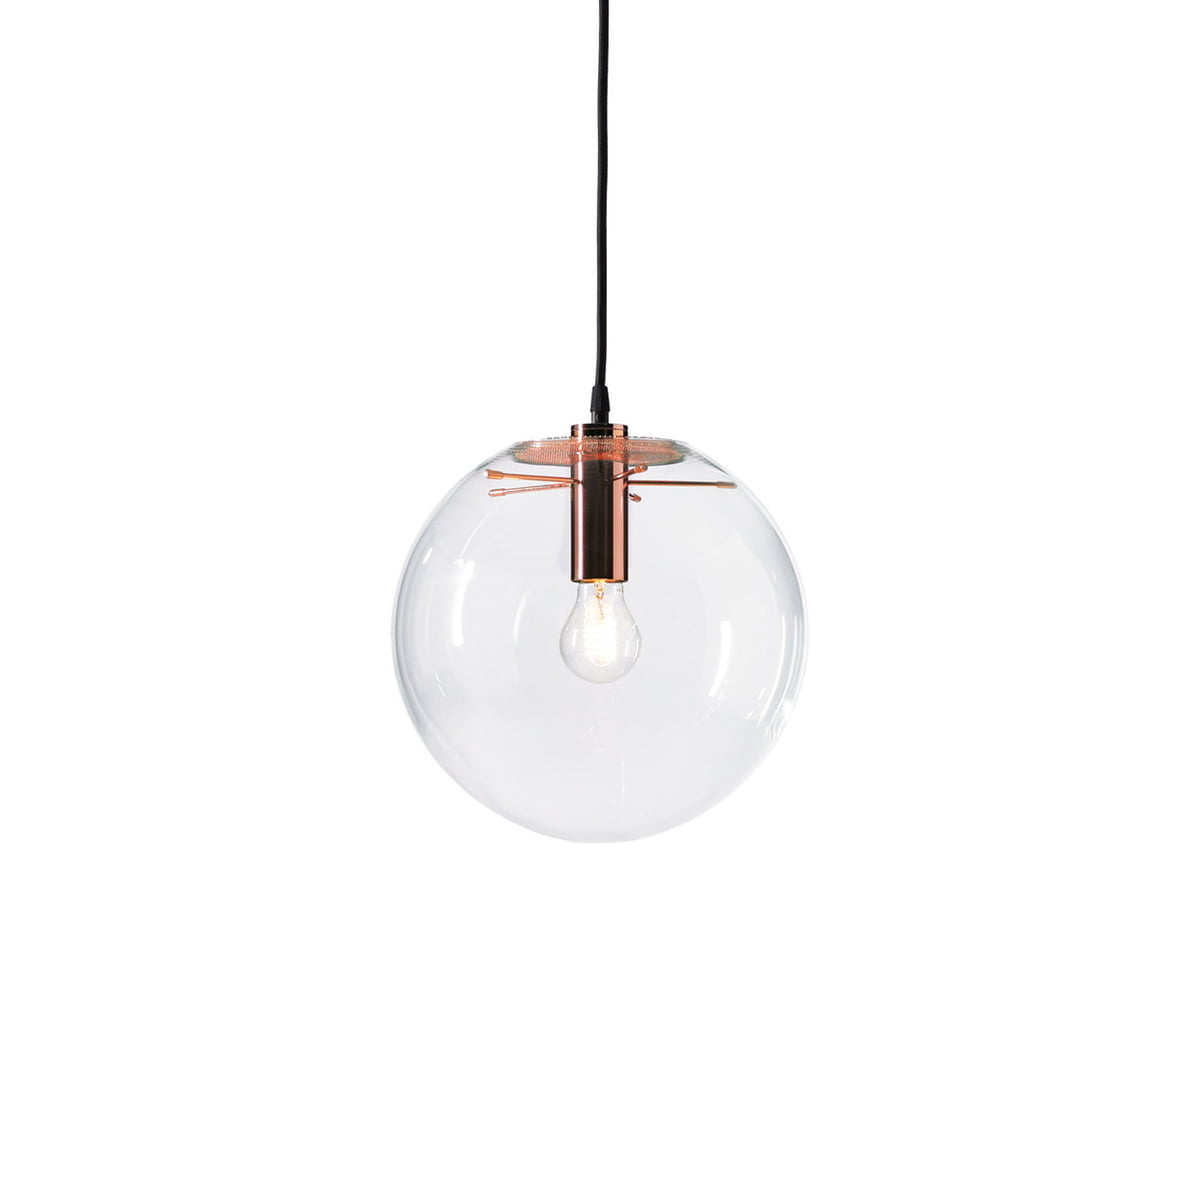 The selene pendant light copper by classicon classicon selene pendant light copper 25cm aloadofball Choice Image